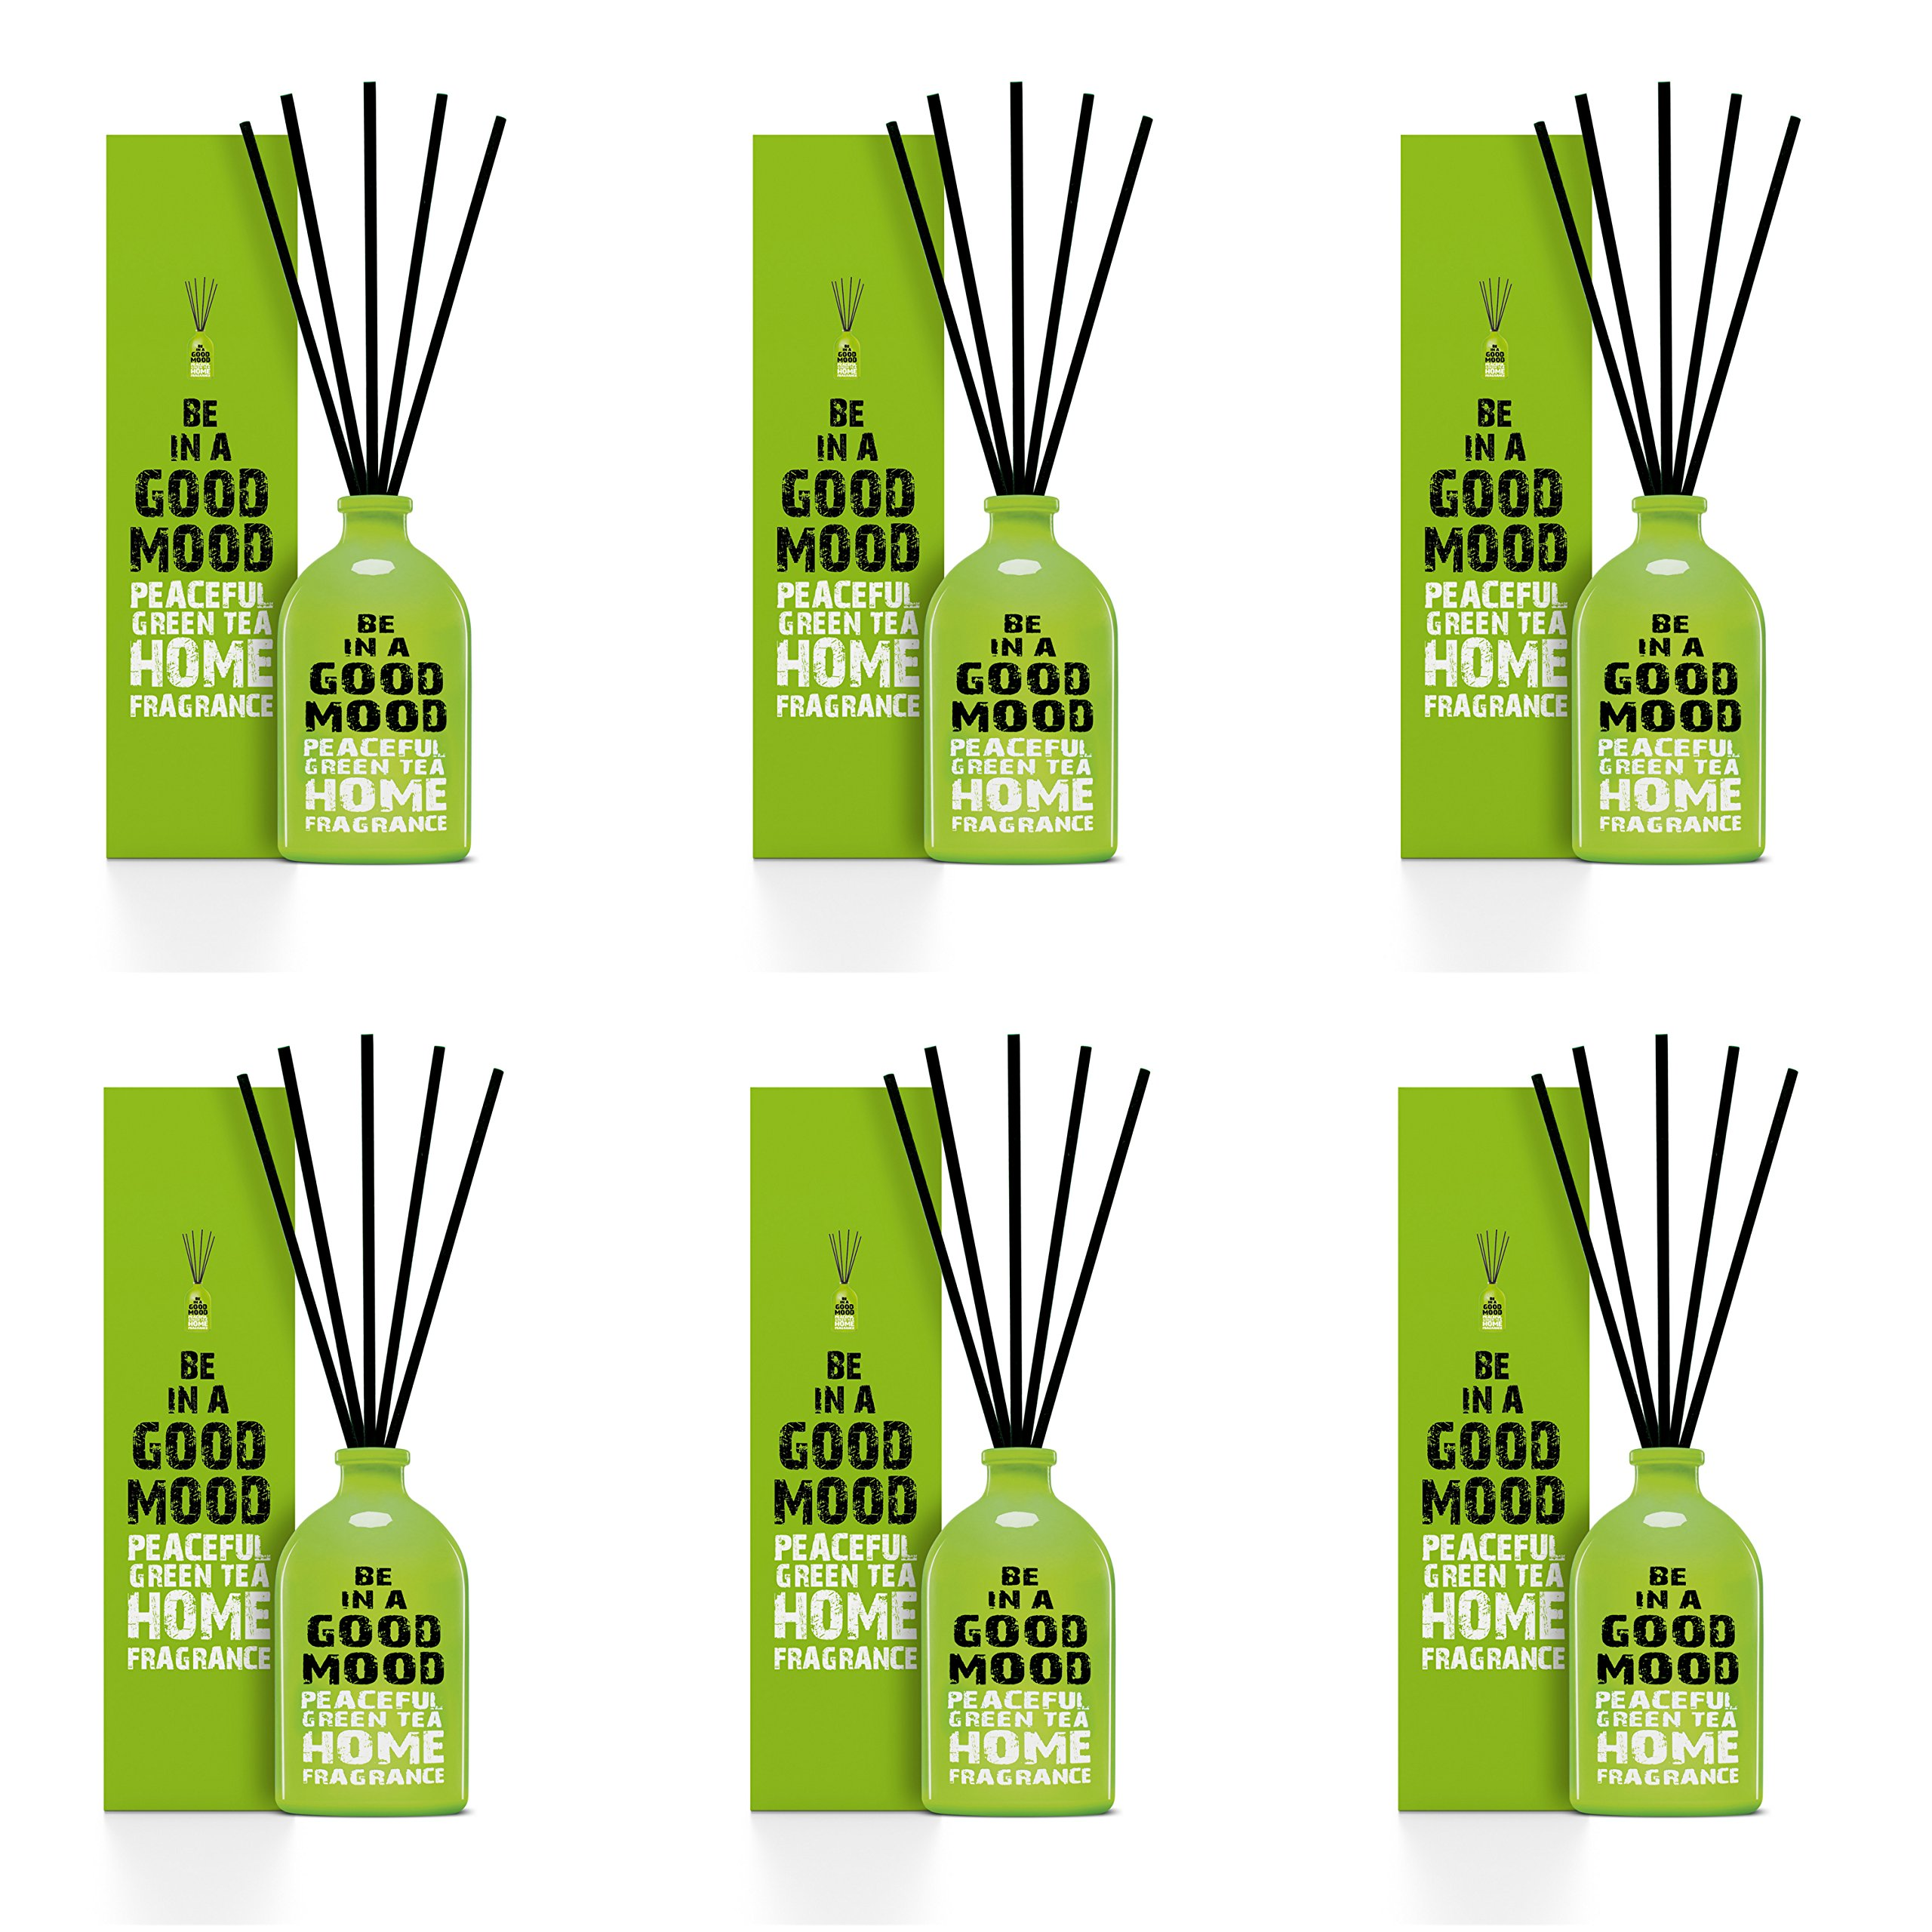 Be in a Good Mood Aromatherapy Diffuser Sticks | Reed Diffuser Set | Aromatic Home Fragrance Set | Essential Oil Diffuser Sticks, Made of Natural Scented Oils Blend - 6 Pack (Green Tea) by Be in a Good Mood